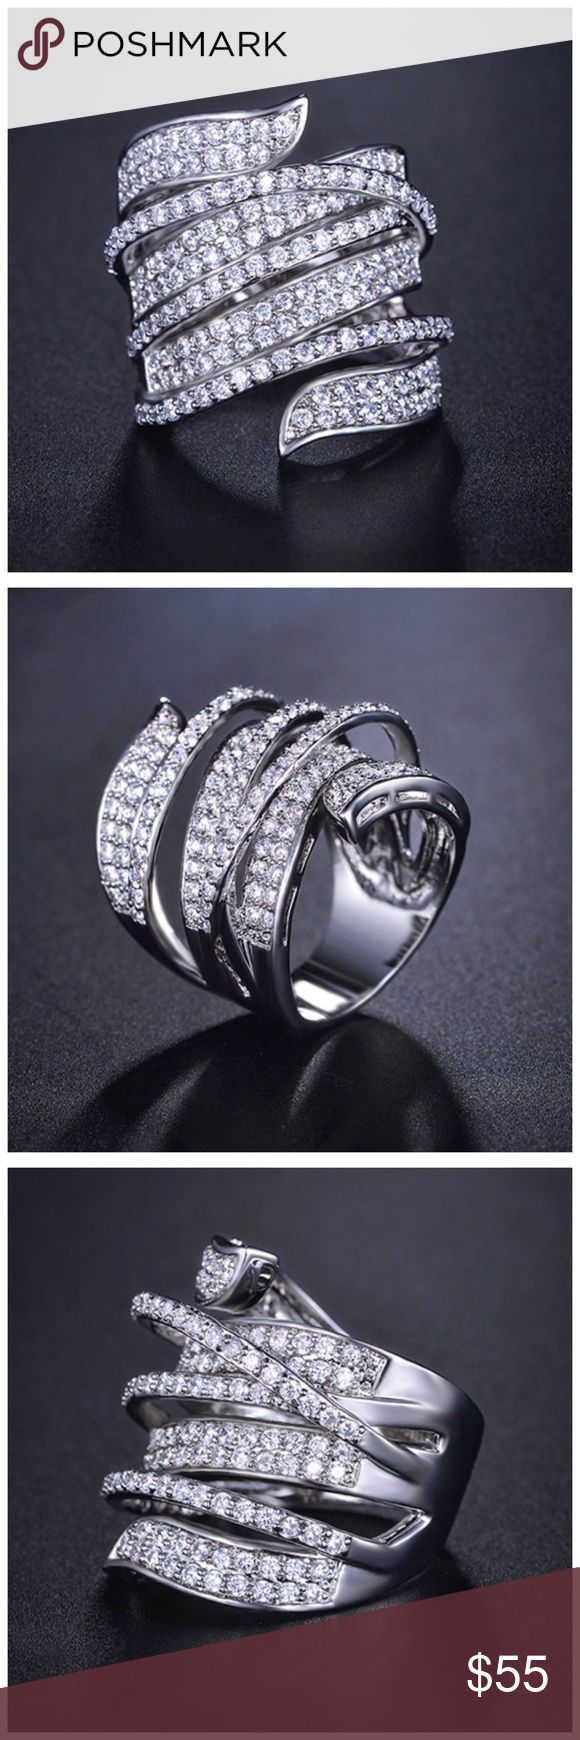 """🆕 Swarovski Crystals 3D Statement Ring DF101 ‼️ PRICE FIRM ‼️ 10% DISCOUNT ON 2 OR MORE ITEMS FROM MY CLOSET ‼️   Handmade Using Swarovski Crystal Ring   Retail $122  To say that this is a spectacular ring would be an understatement. Beautifully & skillfully handcrafted using the finest Swarovski crystals with a 14K white gold overlay. This is a true statement piece. Pave set crystals. Ring is approximately .75"""" wide. Comes with a beautiful gift box. Jewelry Rings"""